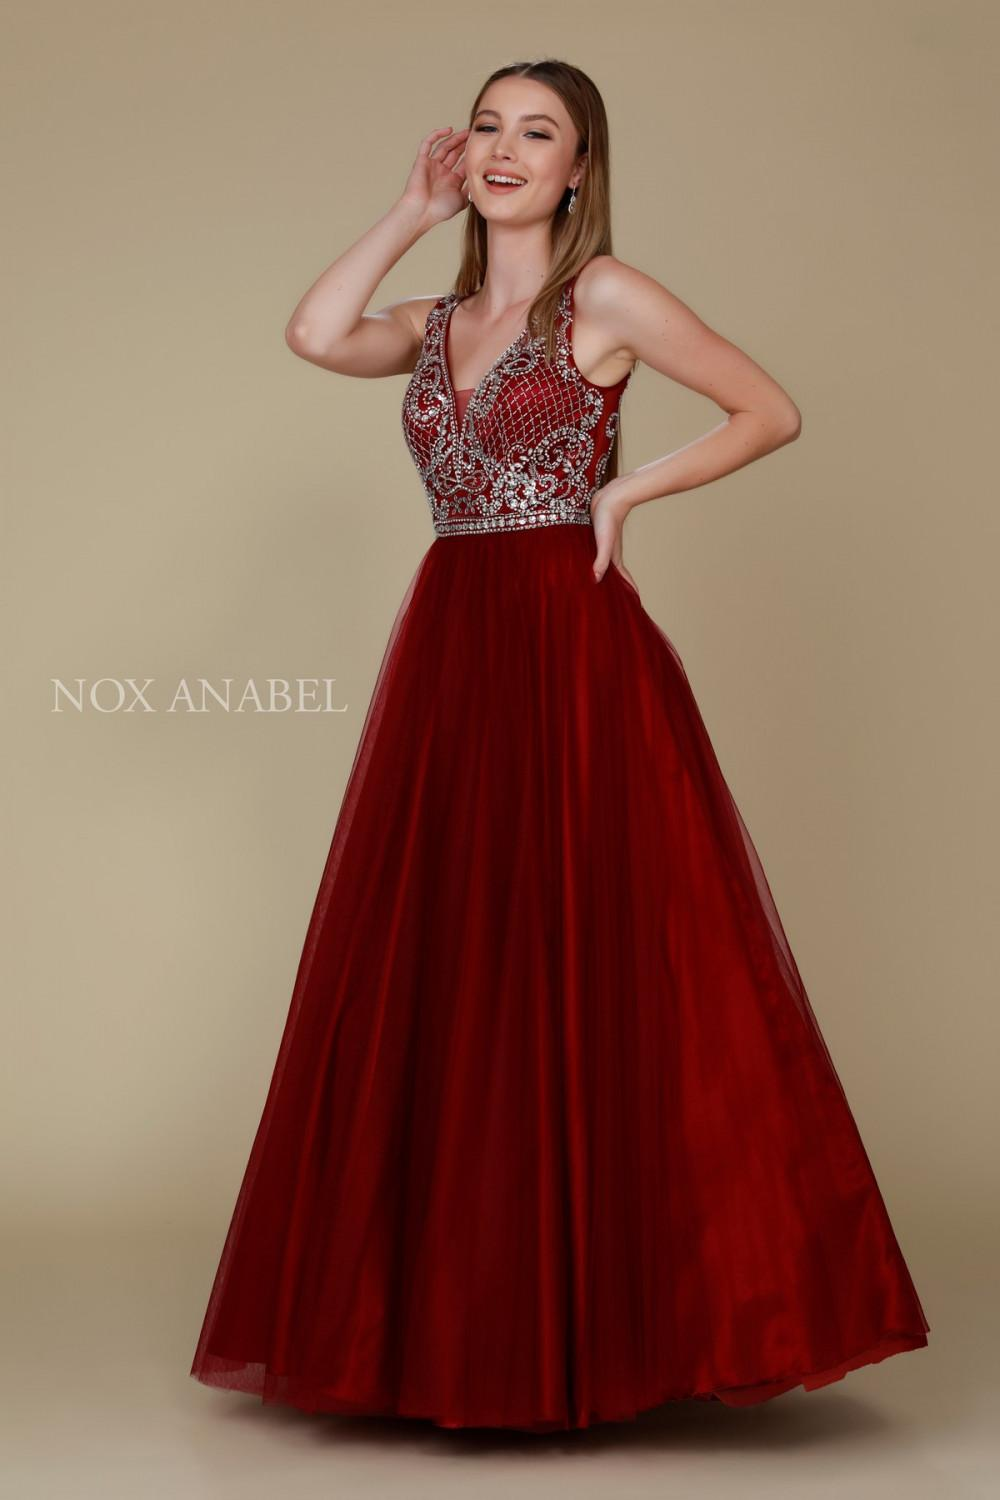 N G087 - Tank Style Embroidered Tulle Ballgown